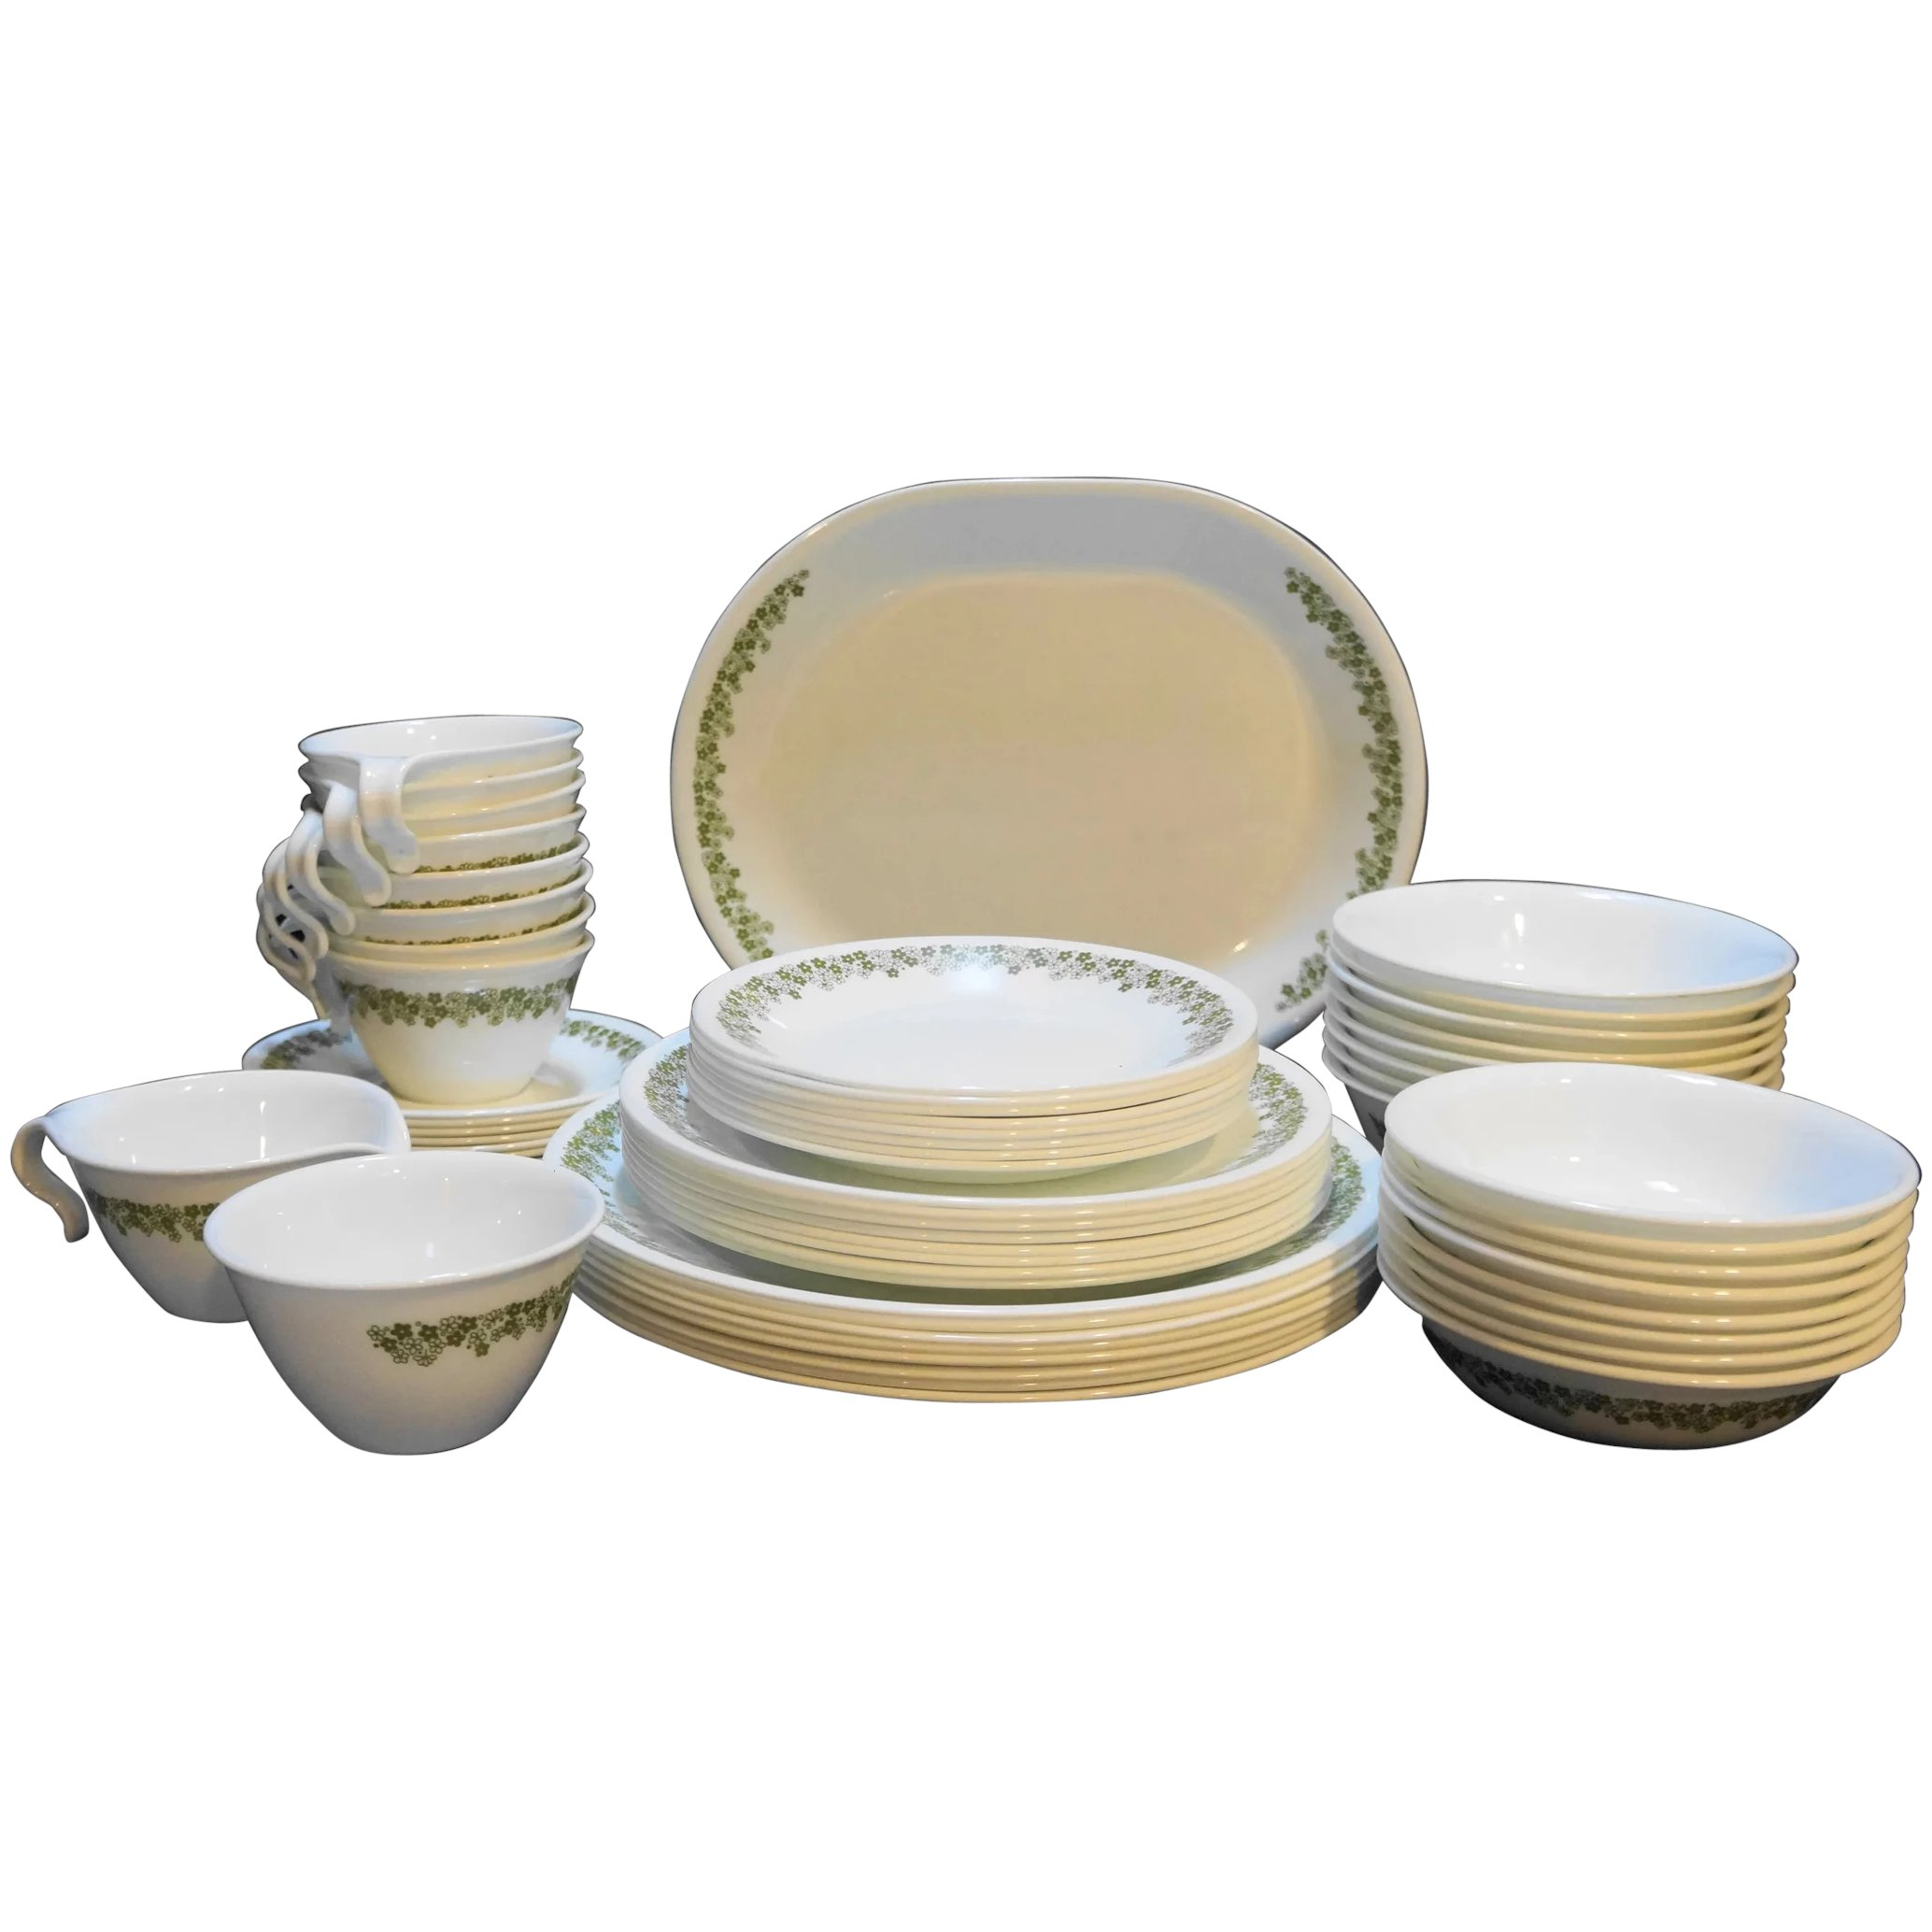 Plates Bowls Cups